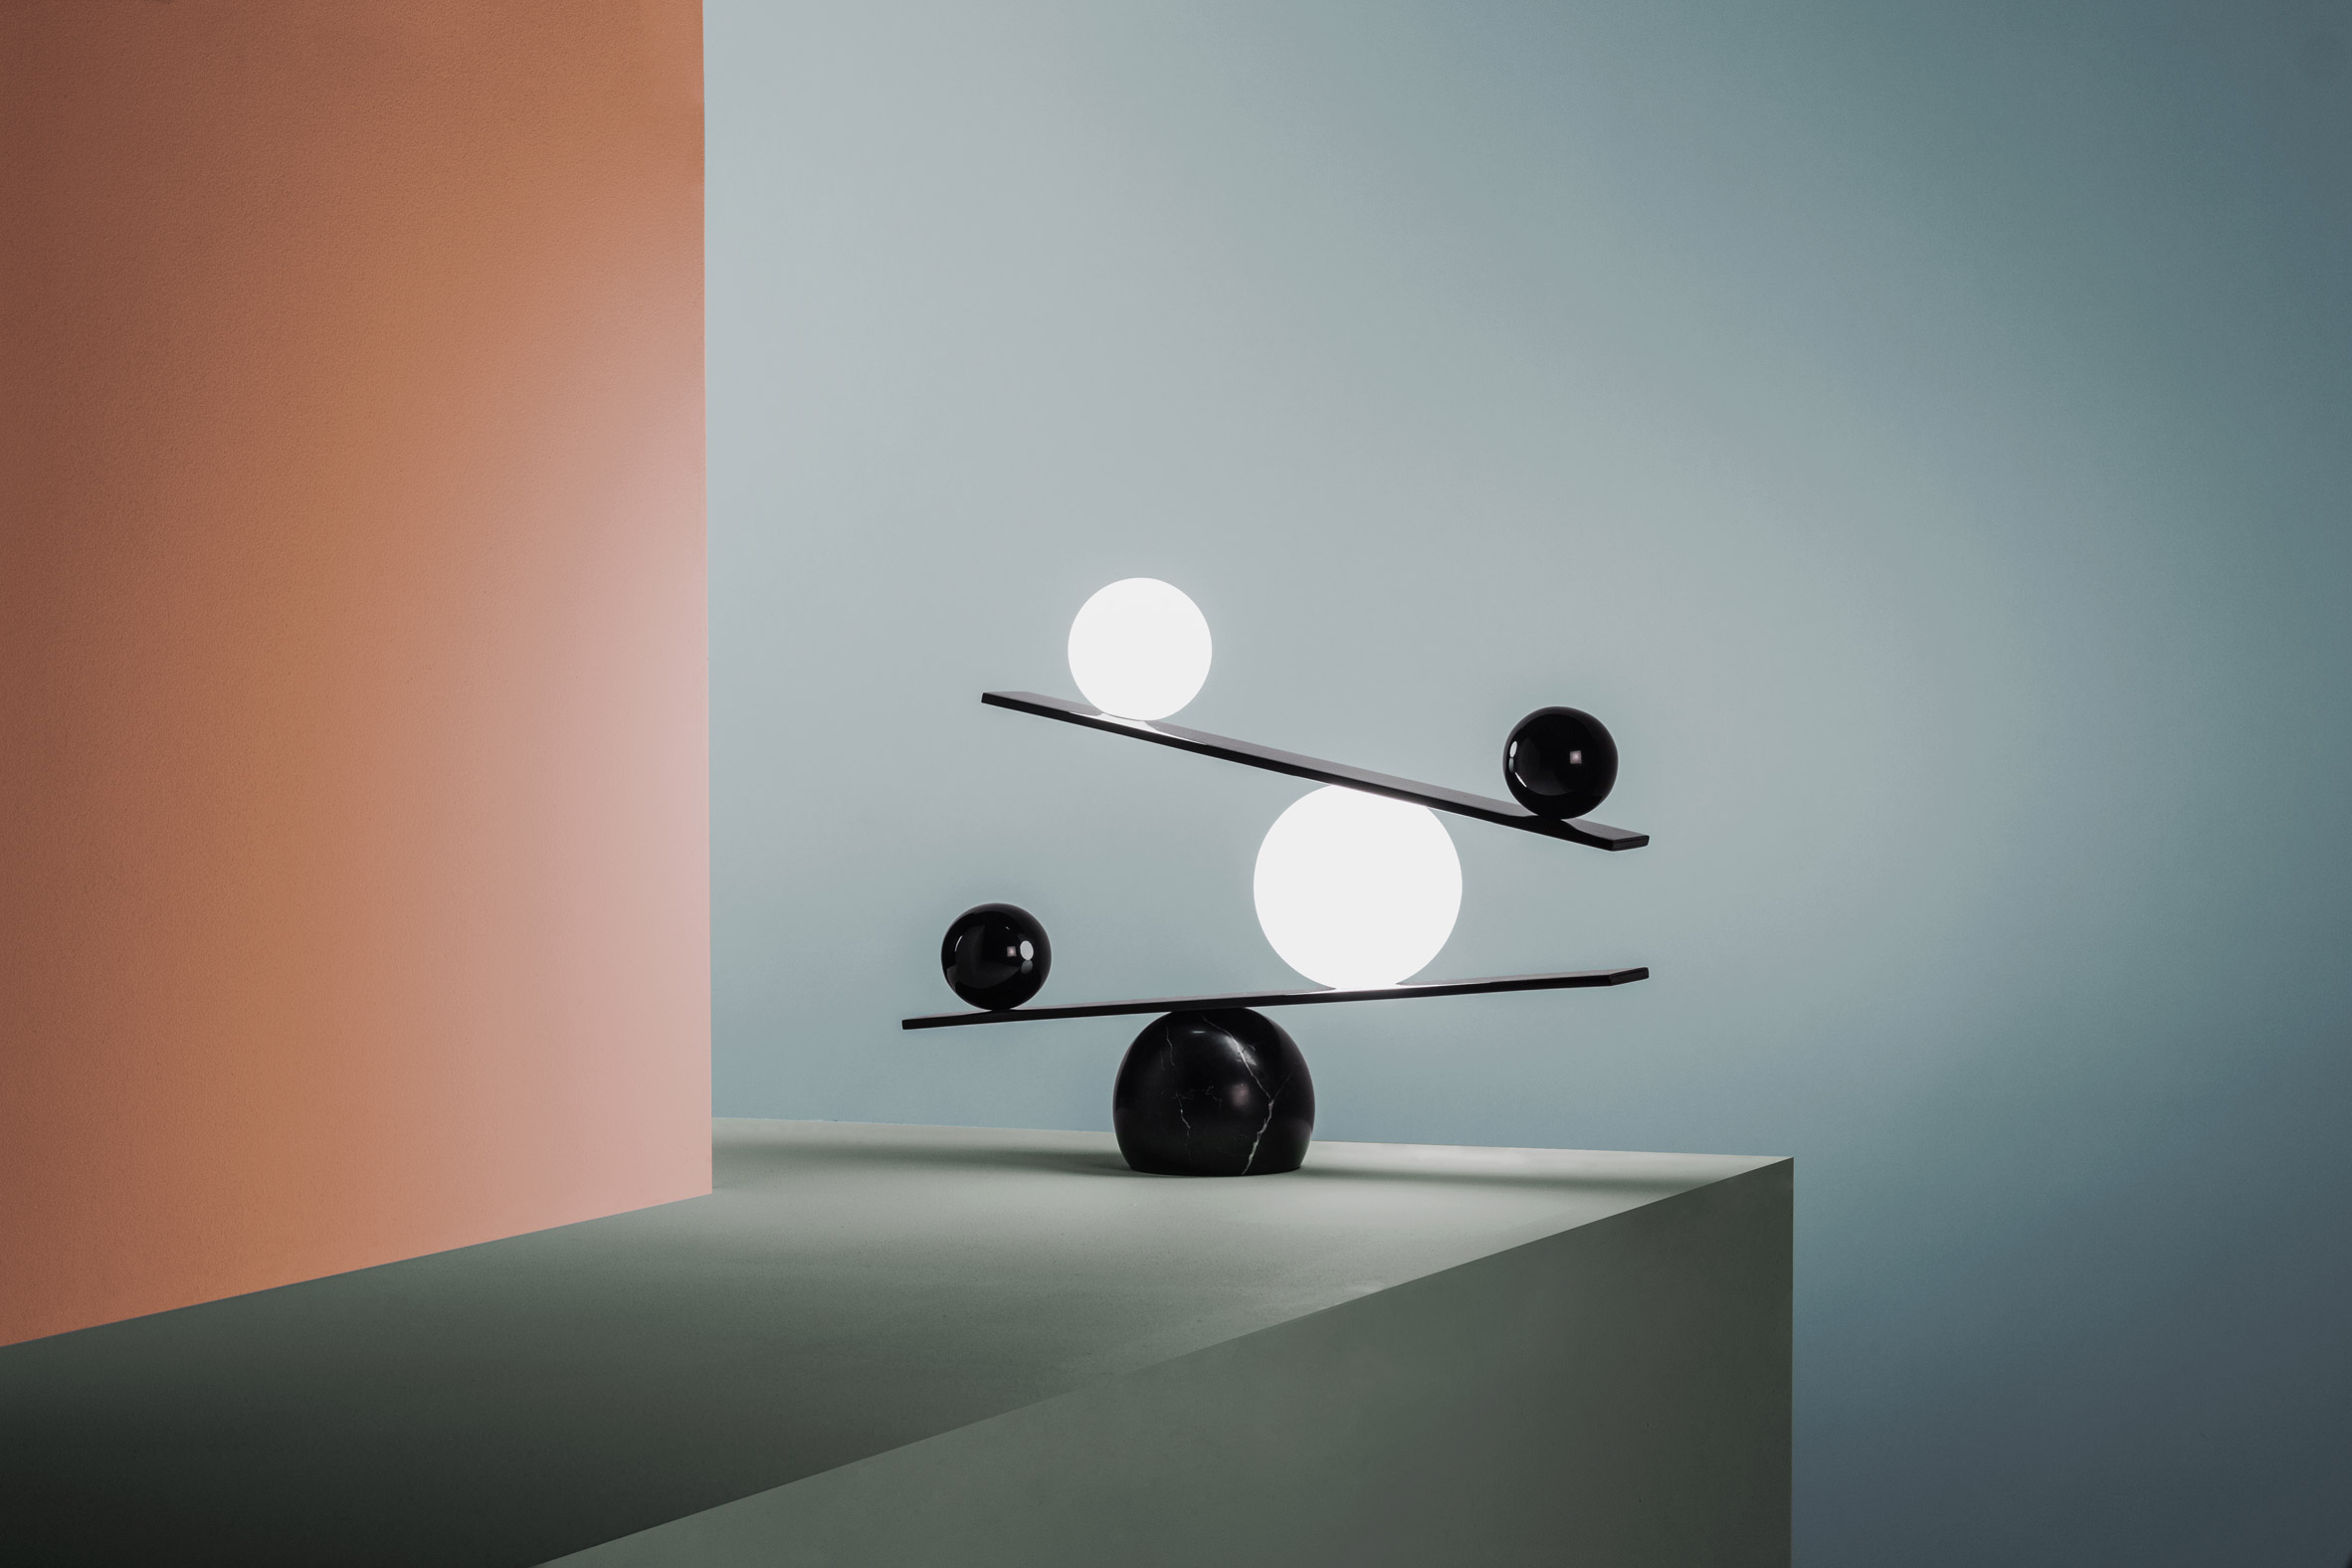 Victor Castanera designs balancing lamp made up of monochrome spheres